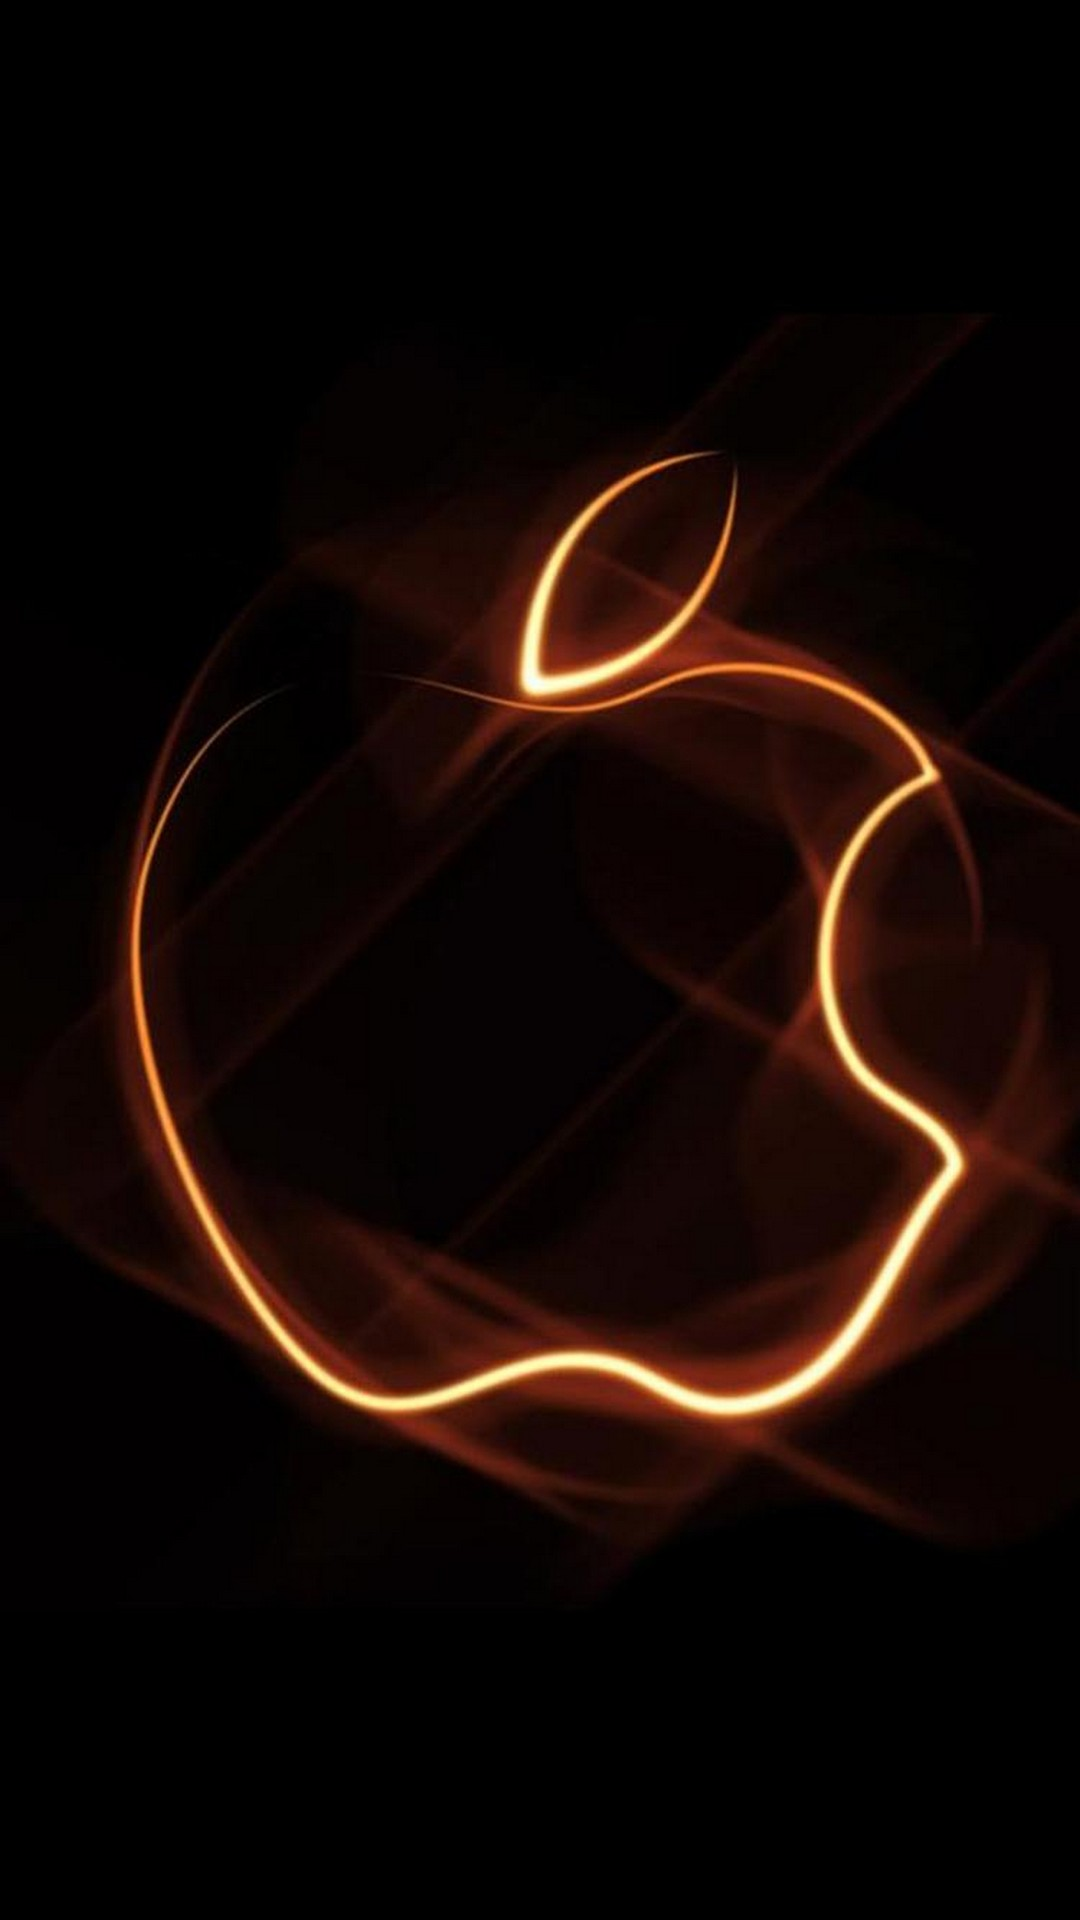 Apple iPhone Wallpaper Light resolution 1080x1920